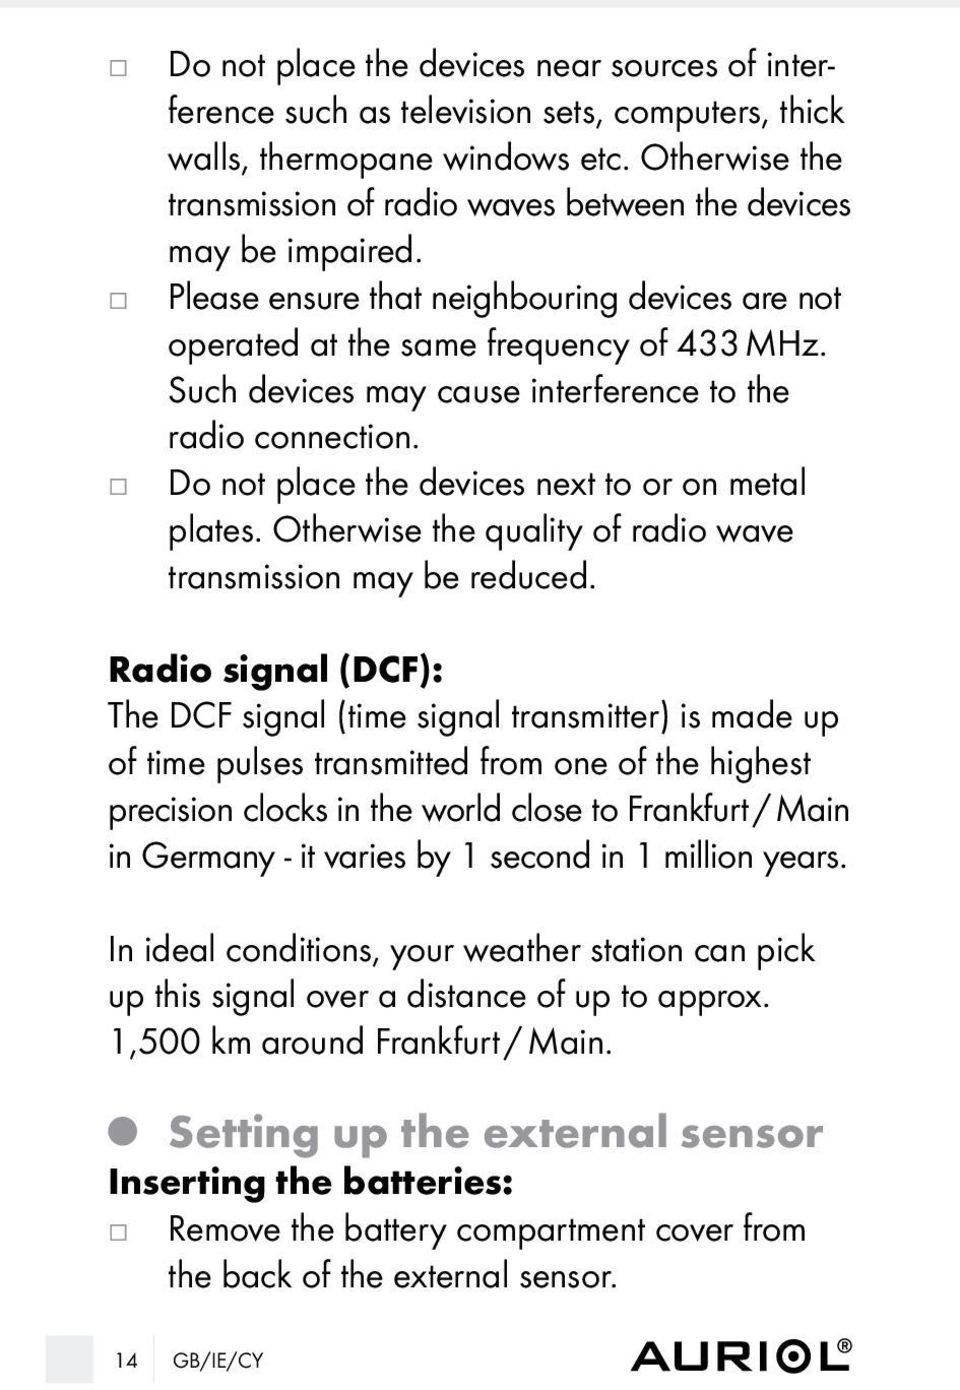 Such devices may cause interference to the radio connection. Do not place the devices next to or on metal plates. Otherwise the quality of radio wave transmission may be reduced.